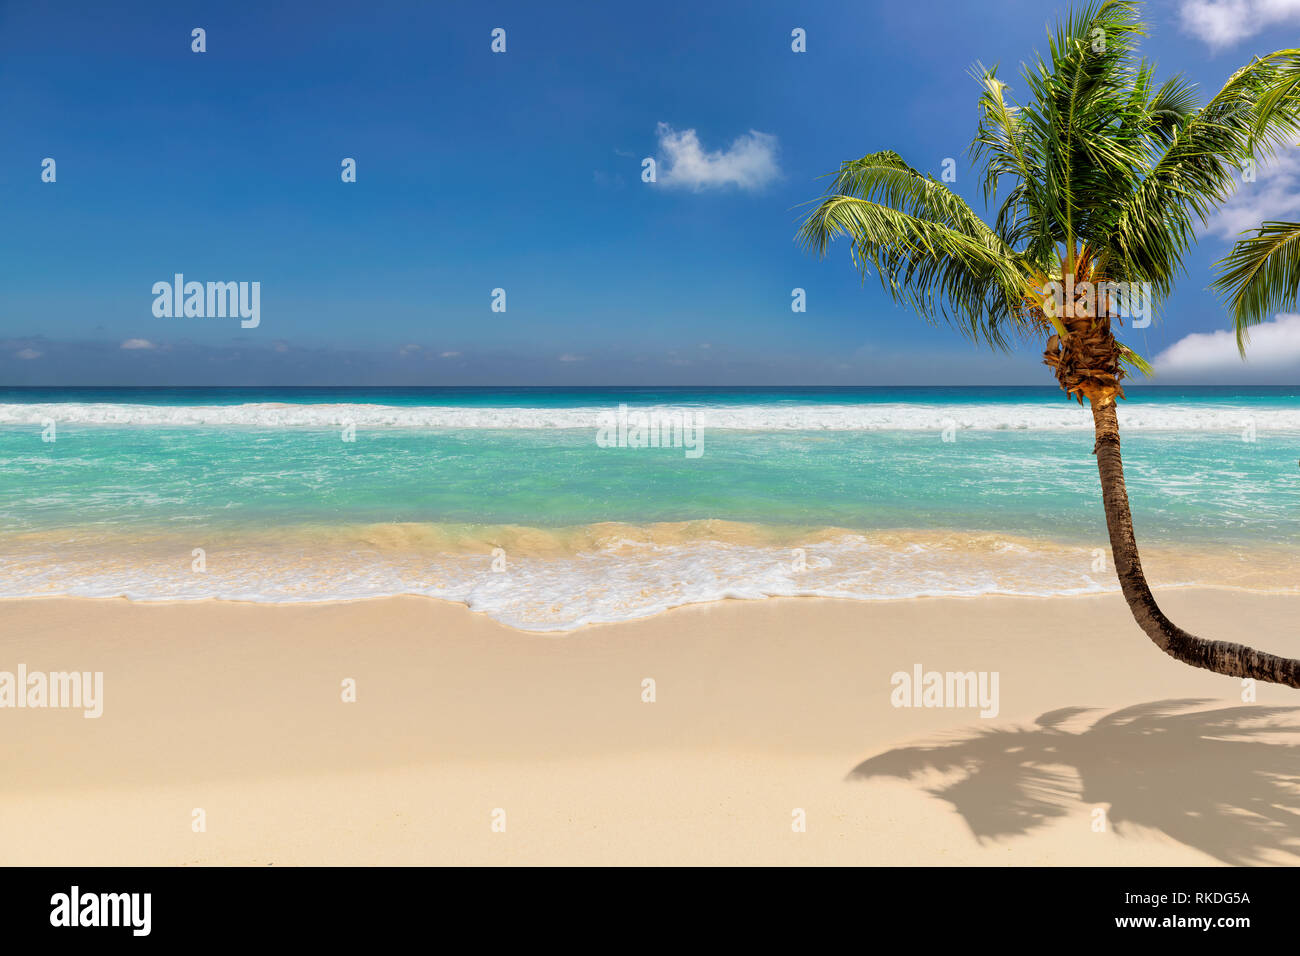 Paradise beach with coco palm over white sand and turquoise sea on exotic island. Stock Photo